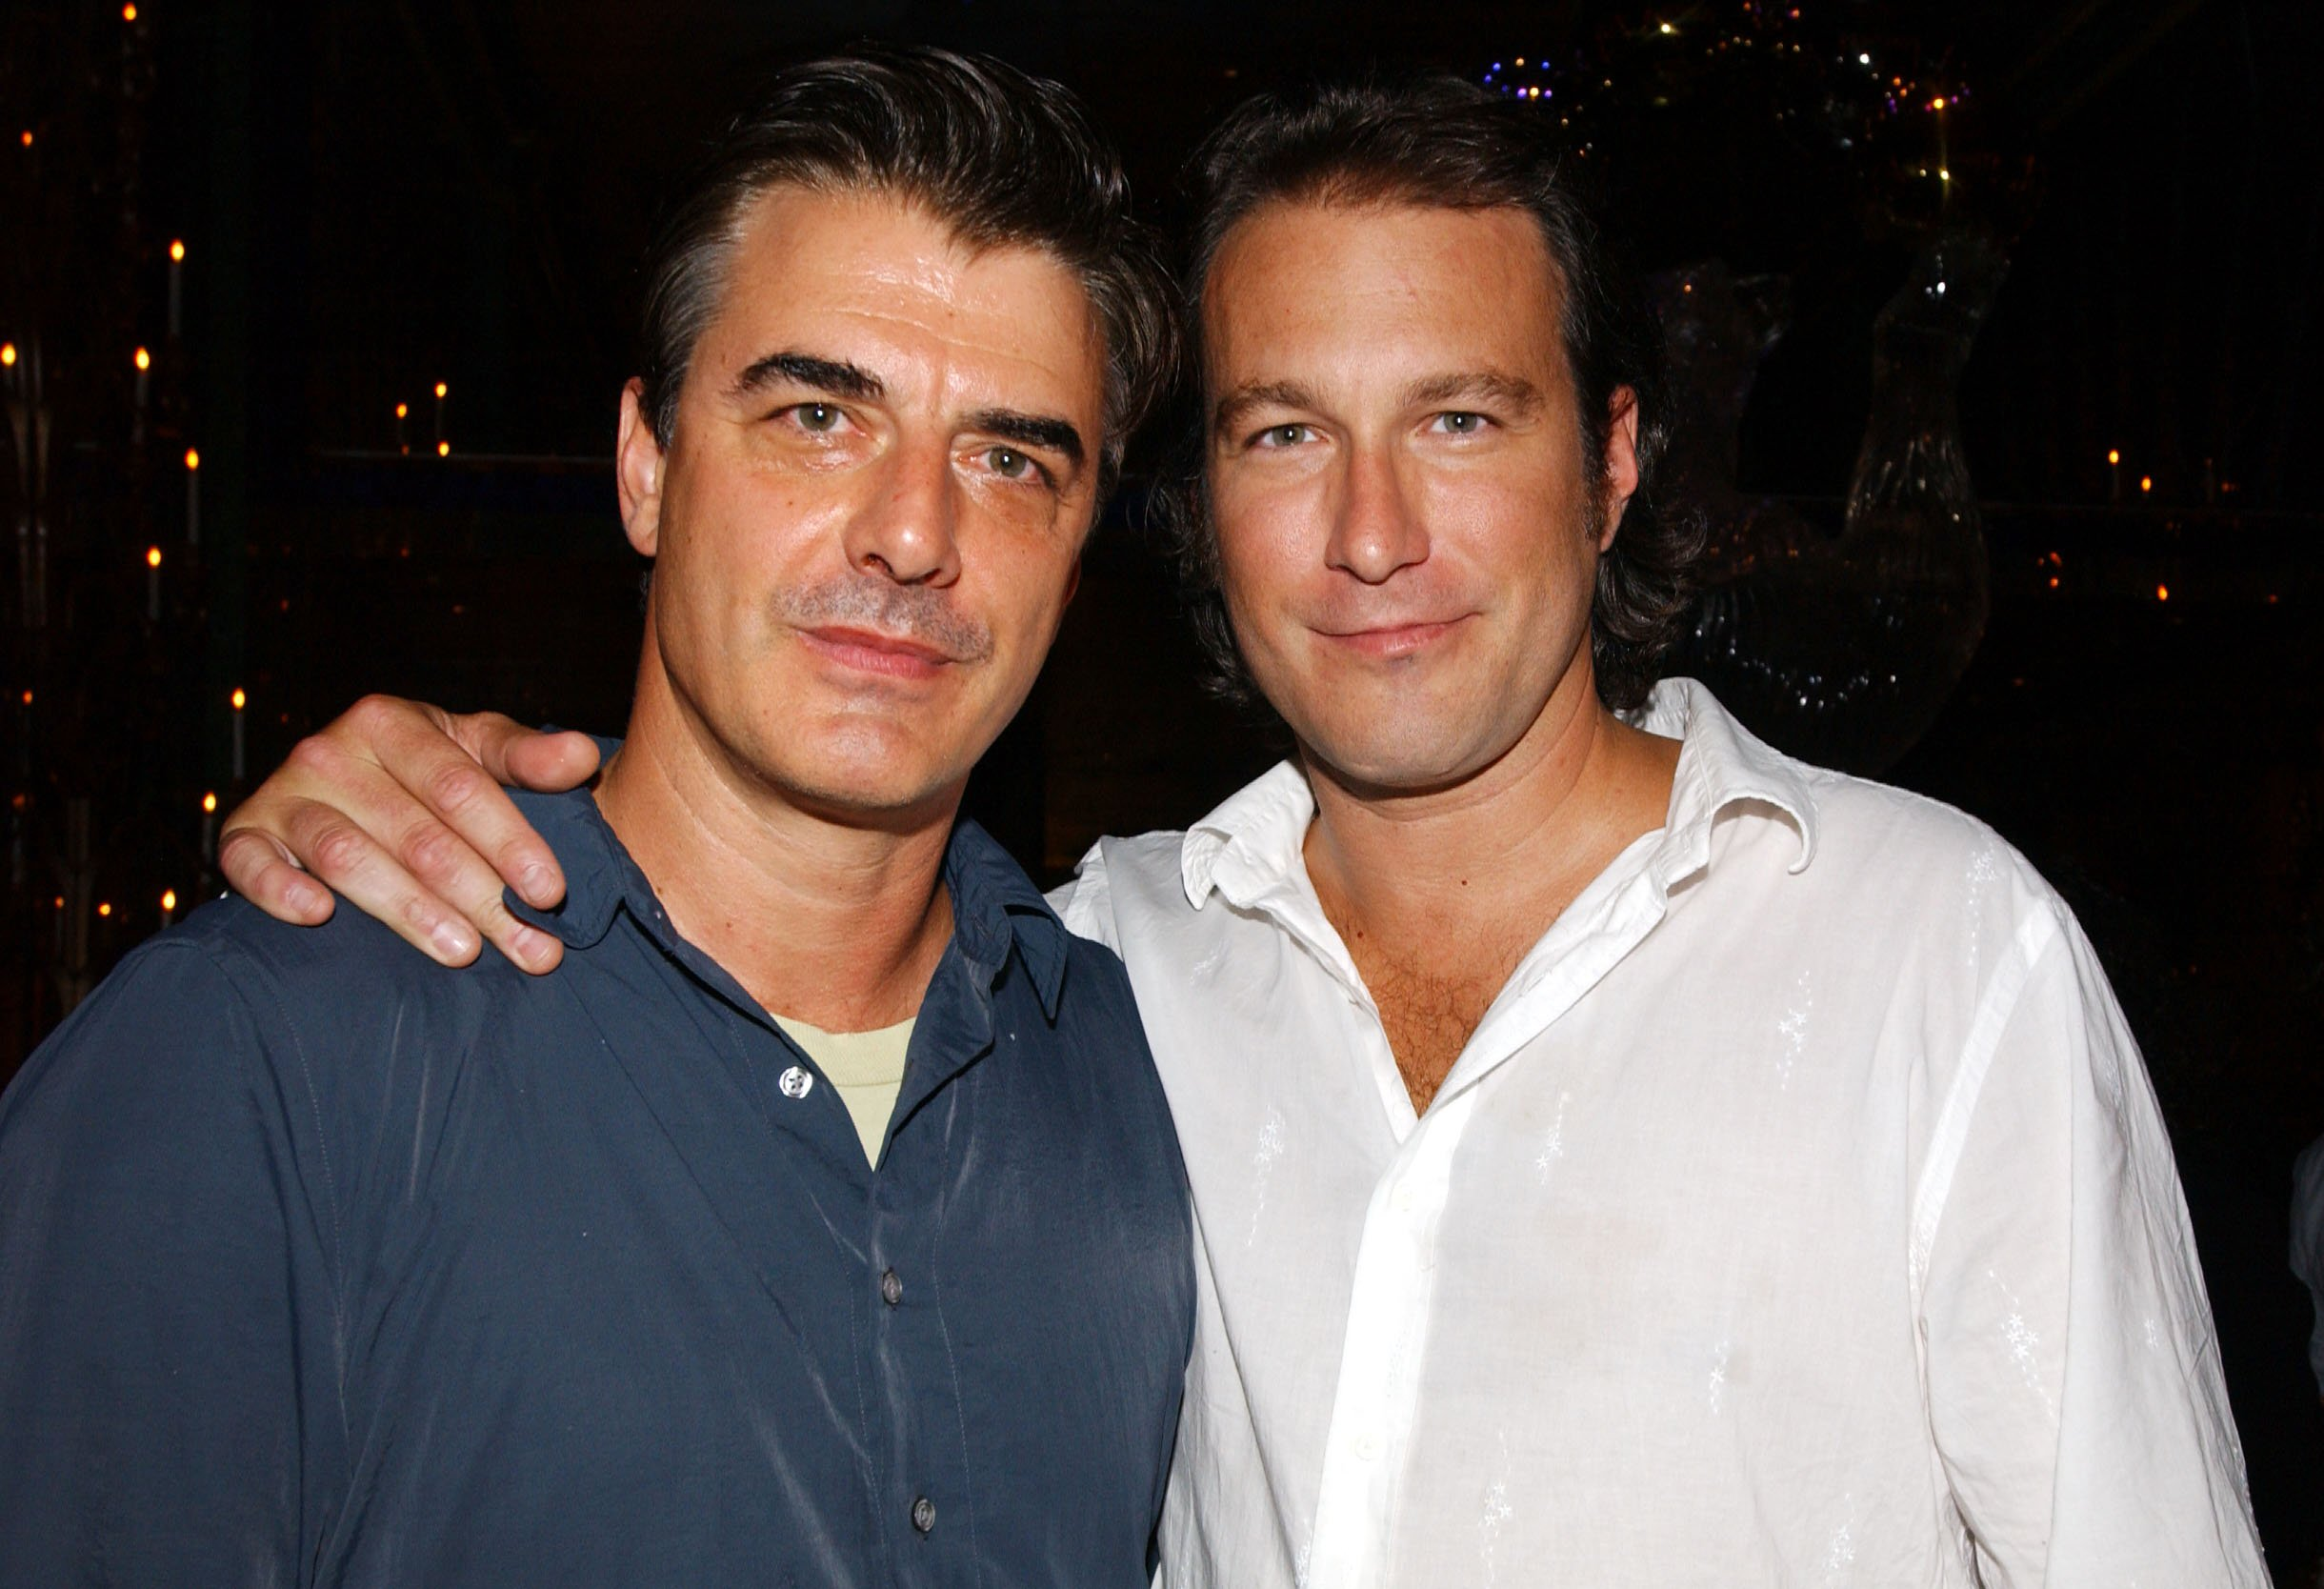 """Chris Noth and John Corbett at the """"K-19: The Widowmaker"""" NY Premiere Party at the Russian Tea Room in New York City, July 17, 2002 